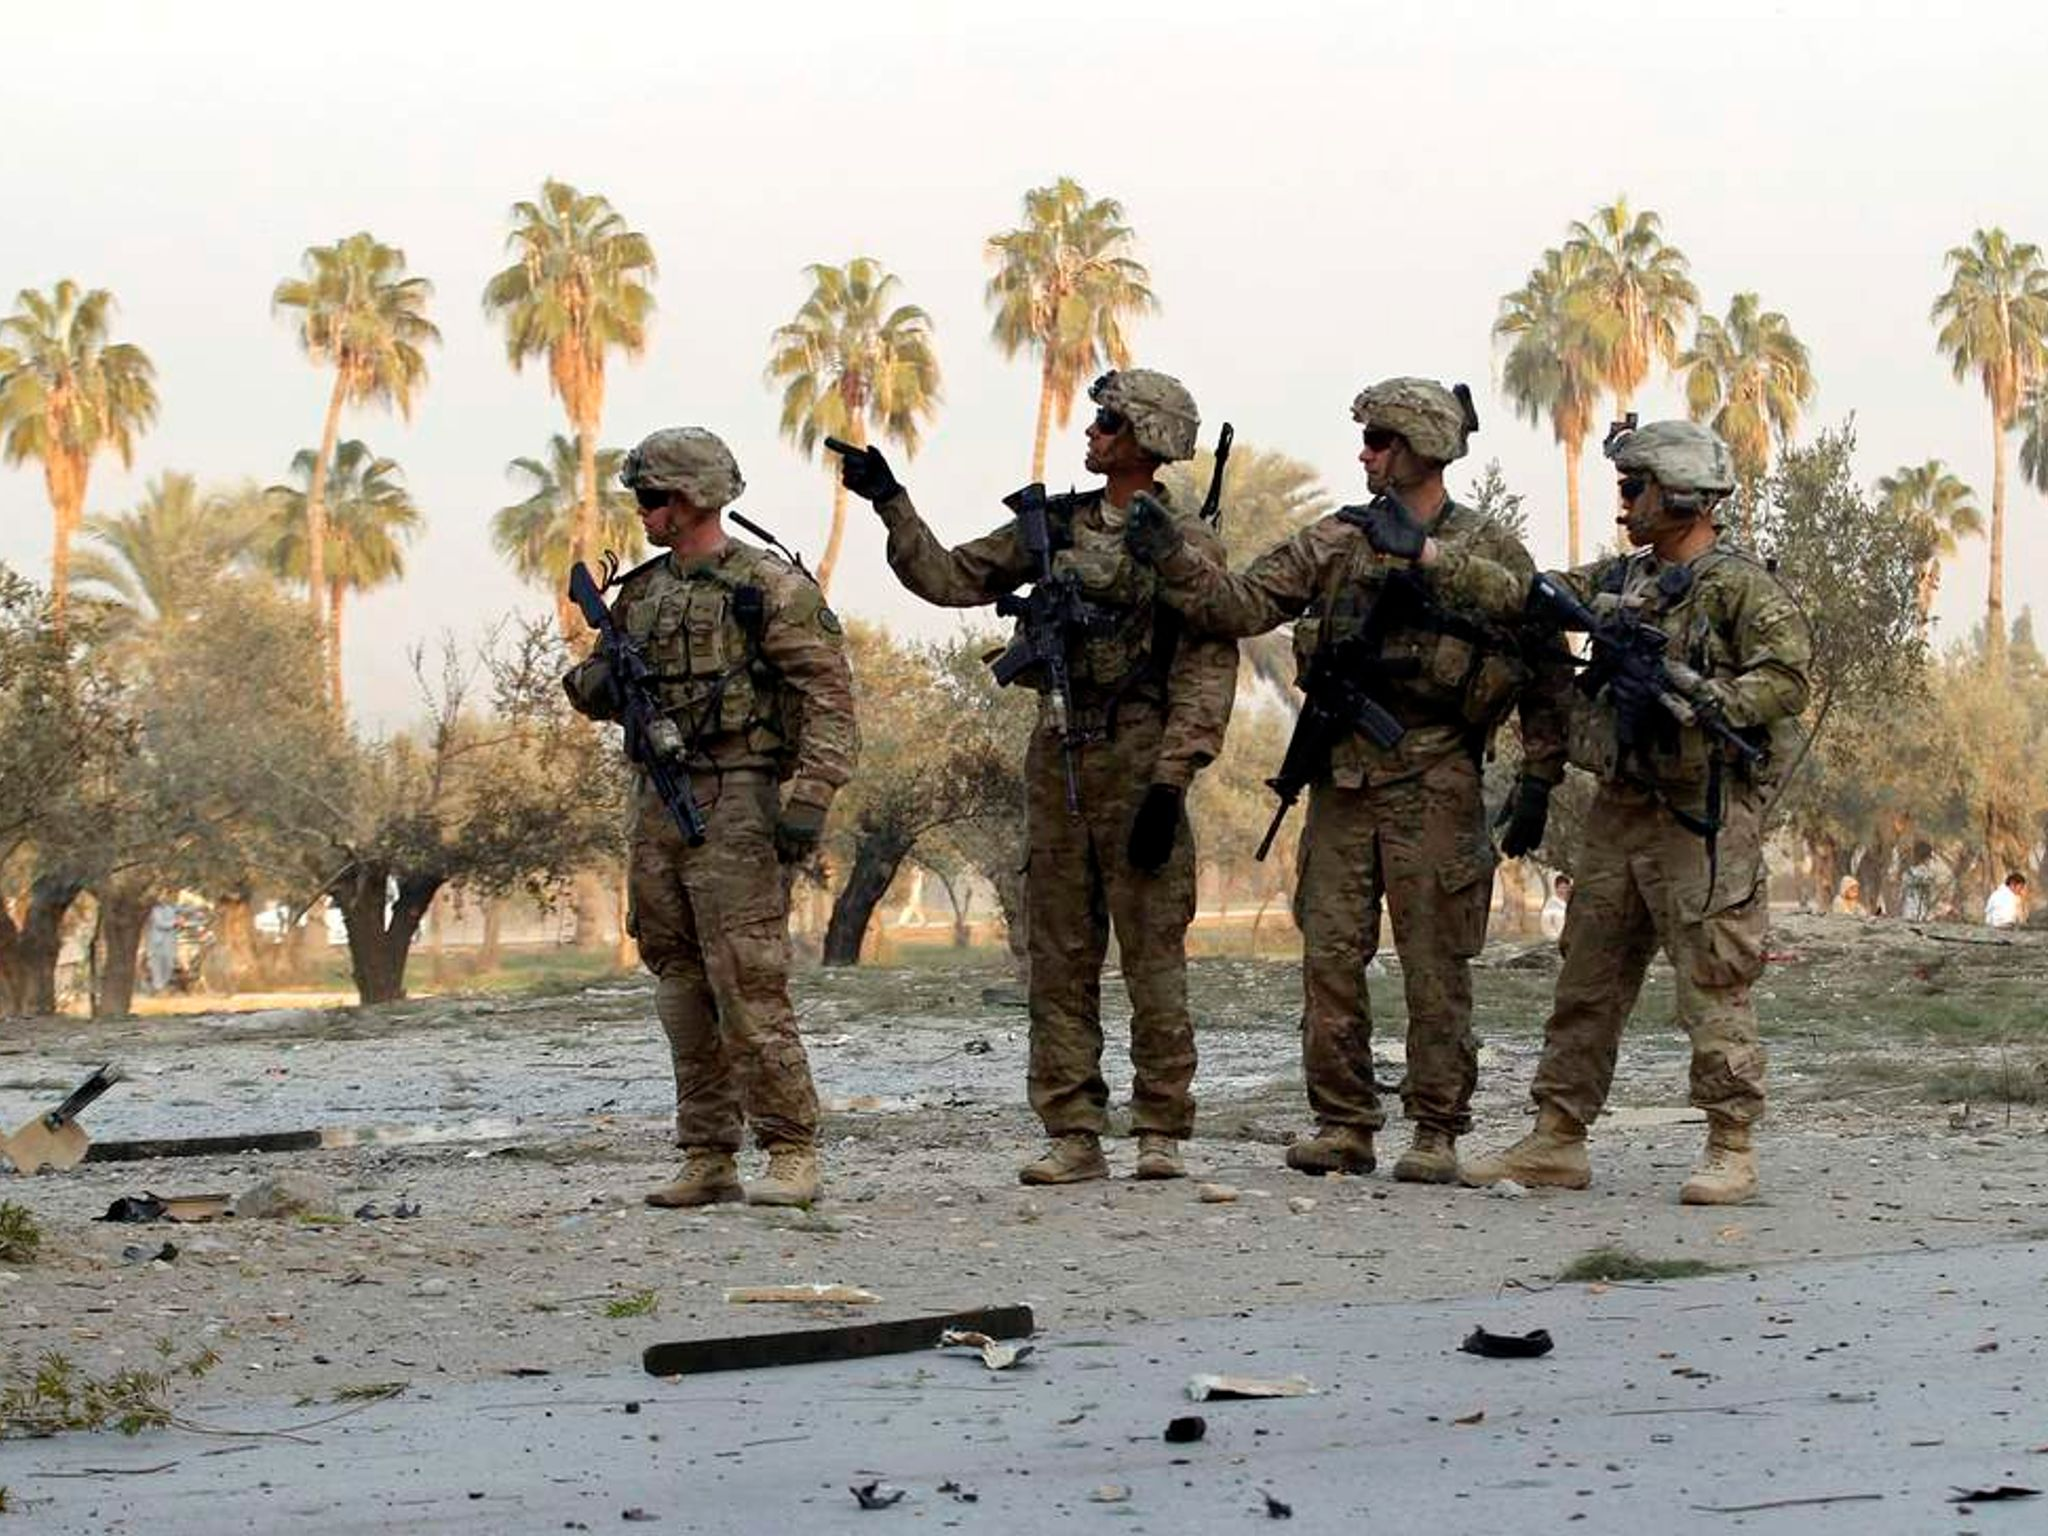 withdrawal of u s troops from afghanistan The withdrawal of us military forces from iraq began in december 2007 with the end of the iraq war troop surge of 2007 and was completed by december 2011, bringing an end to the iraq.